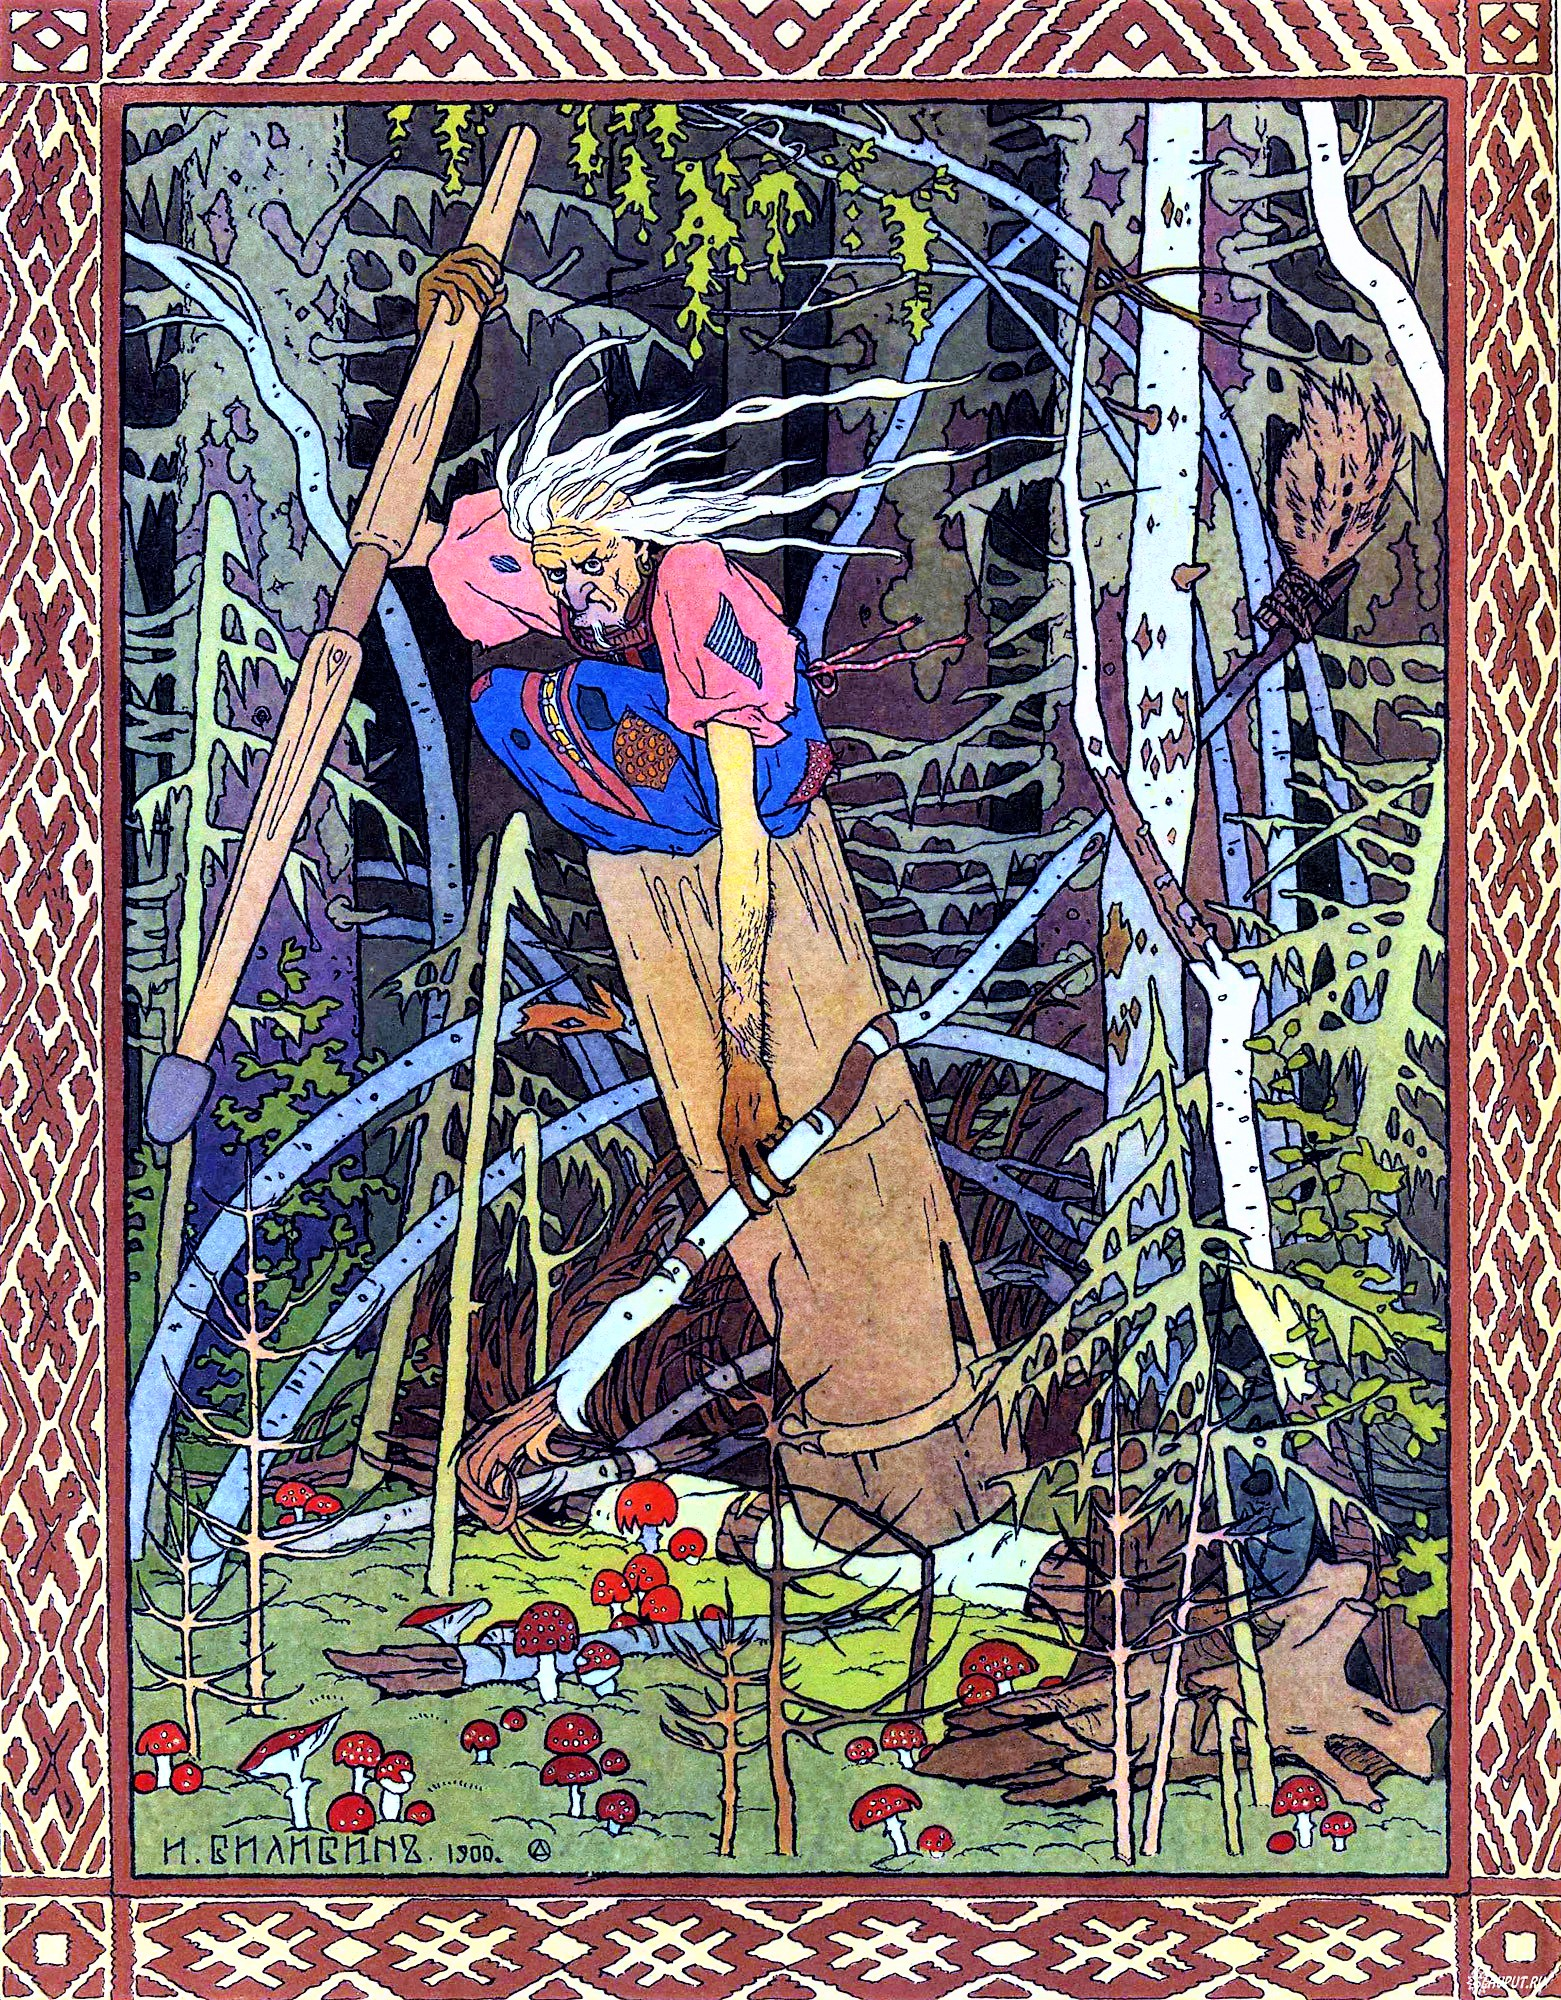 An image of Baba Yaga driving her mortar through the woods.